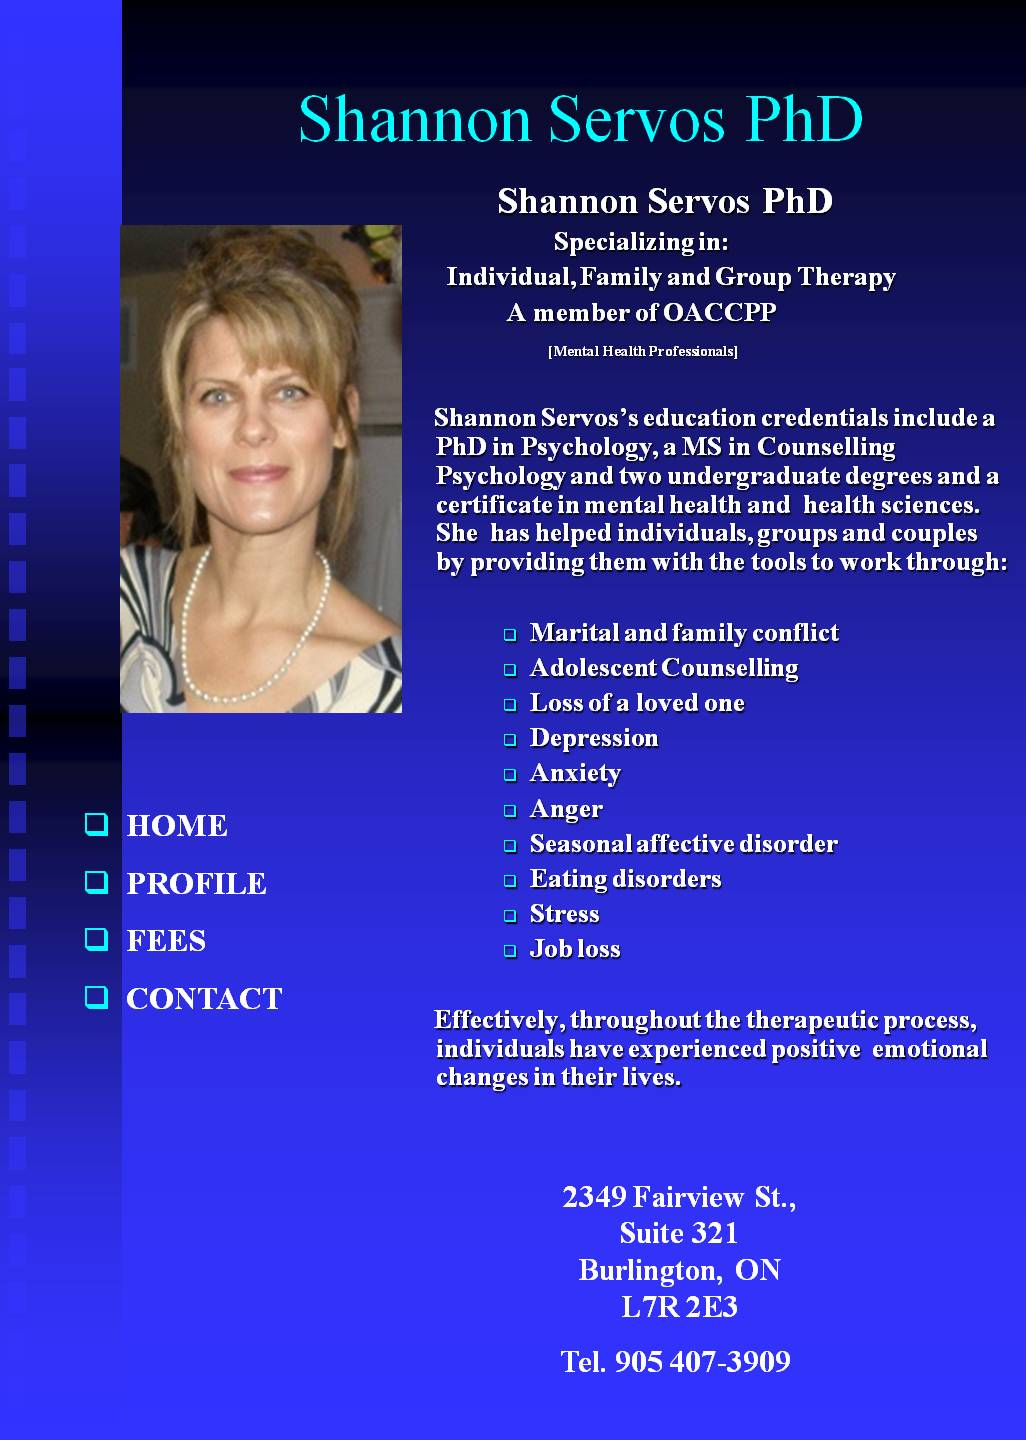 Shannon Servos PhD in Psychology, Psychologist specializing in Individual, Family and Group Therapy, Psychological Counseling Services and Consultations. Burlington, Ontario, Canada, marital family conflict, adolescent counselling, depression, anxiety, anger, seasonal affective disorder, eating disorders, stress, job loss,  http://therapists.psychologytoday.com/rms/prof_detail.php?profid=62020&sid=1349697538.7937_1102&city=Burlington&state=ON,        http://www.theravive.com/therapists/shannon-servos.aspx